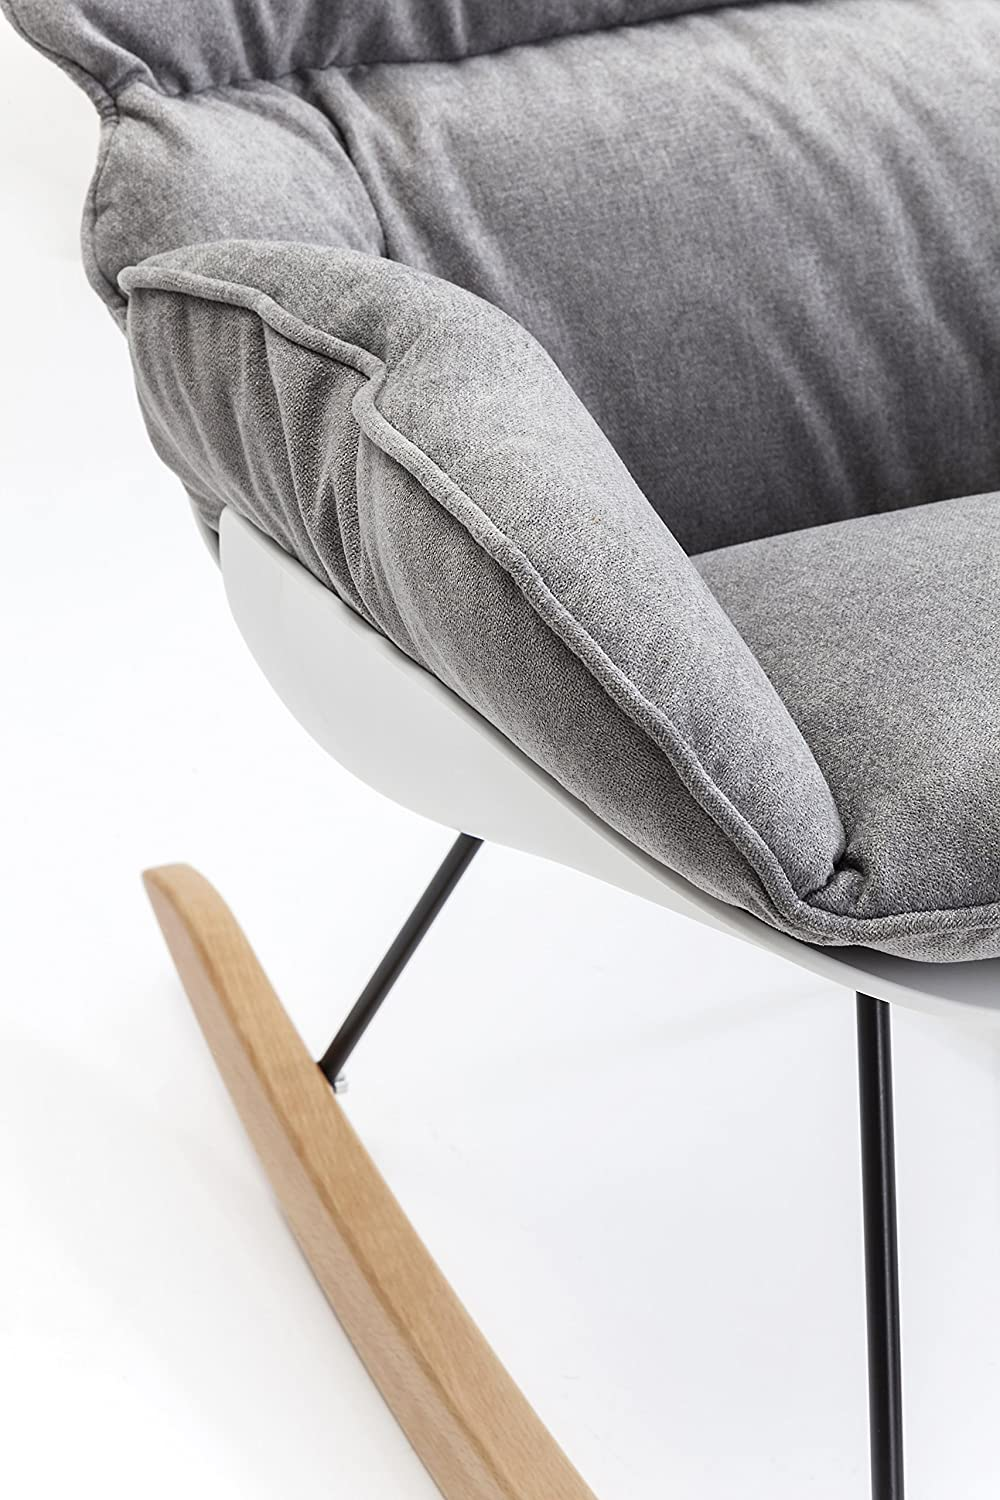 KARE Design - Silla Mecedora Design Rocking Chair Alicante ...